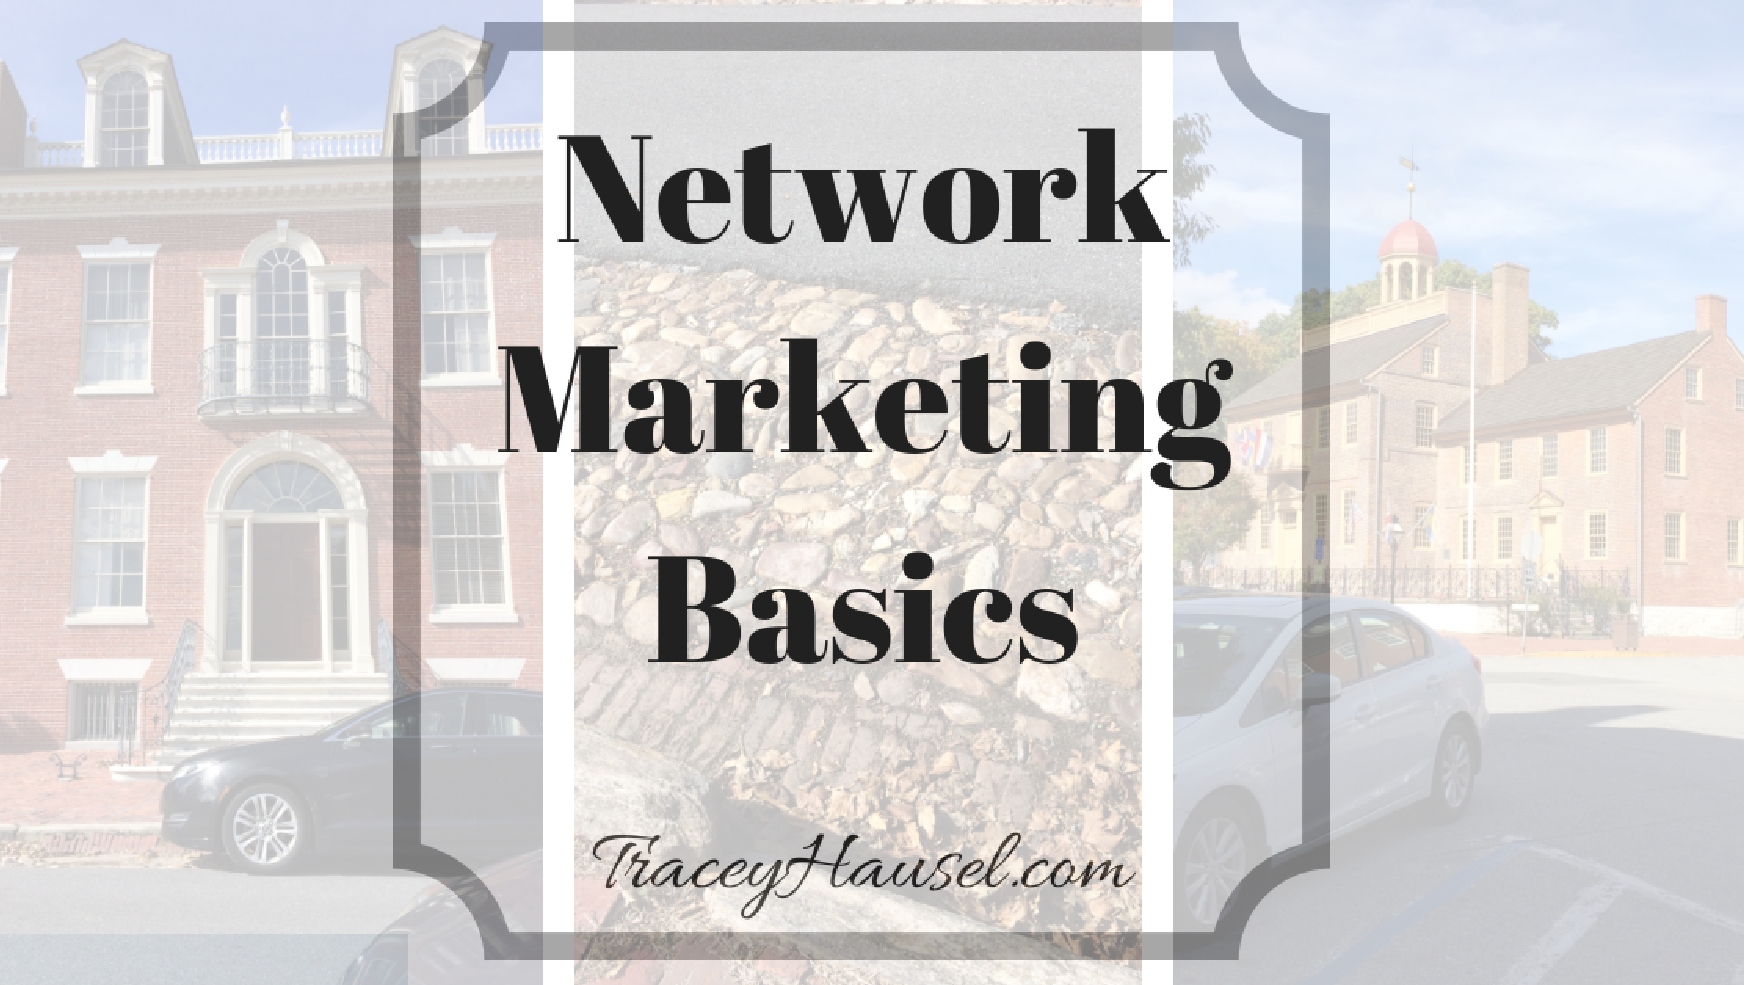 Network Marketing Basics: 7 Foundation Steps